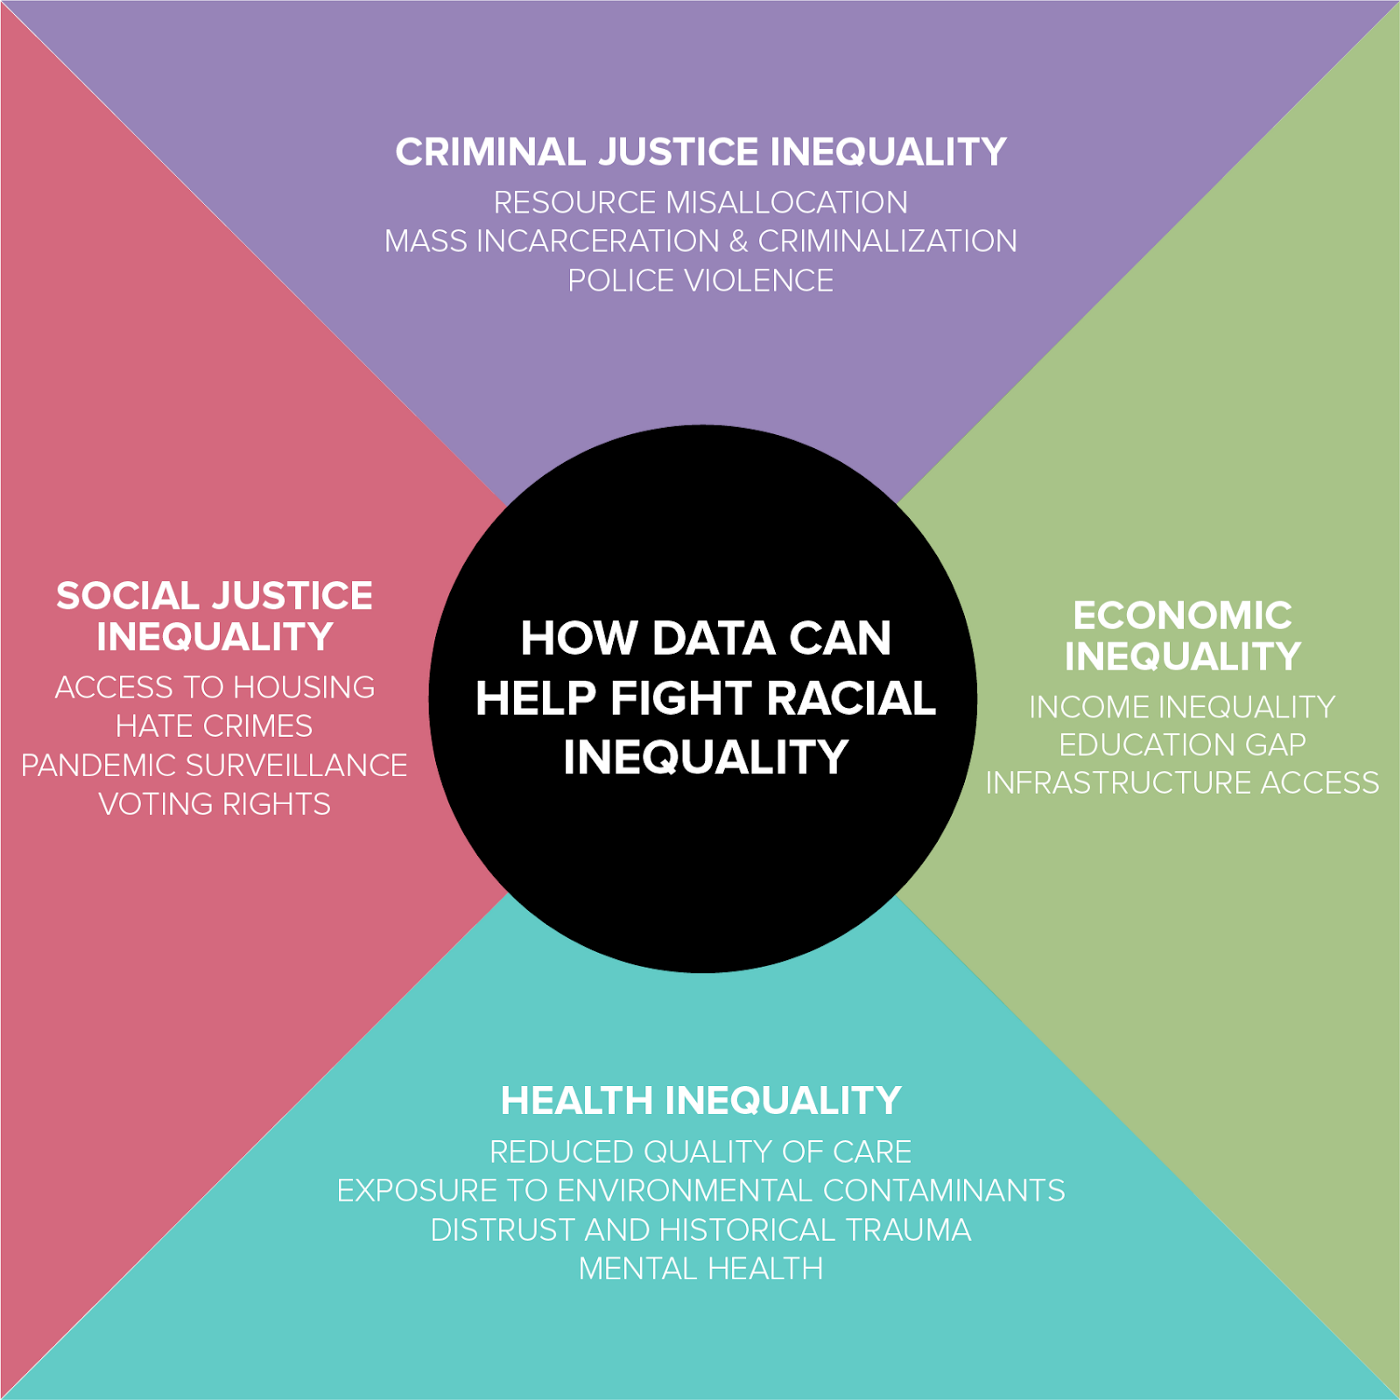 How Data Can Map and Make Racial Inequality More Visible (If Done Responsibly)